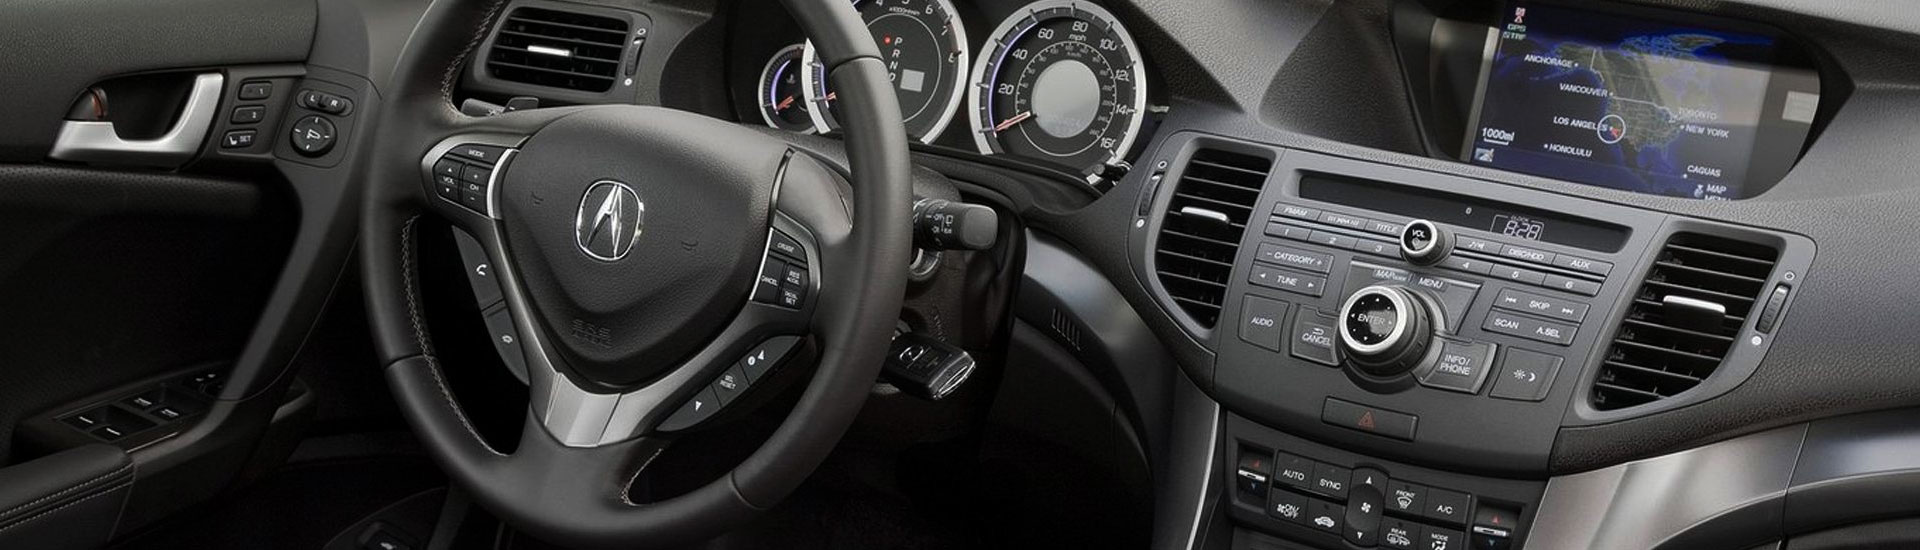 Acura TSX Custom Dash Kits